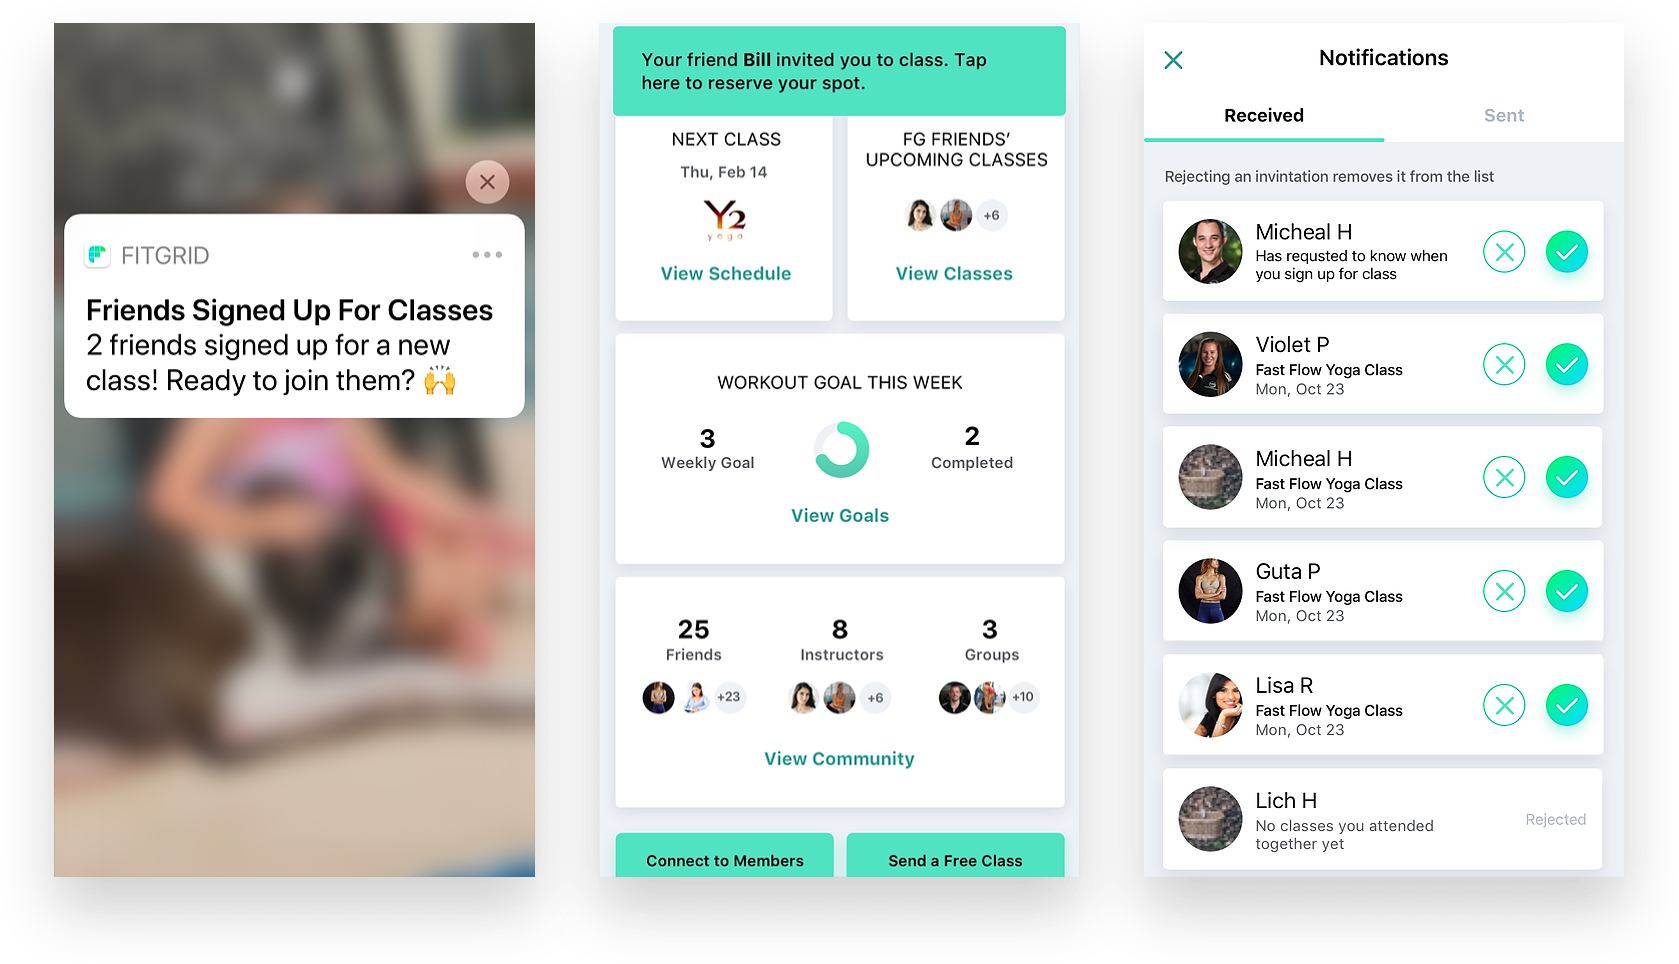 FitGrid Class App Notifications